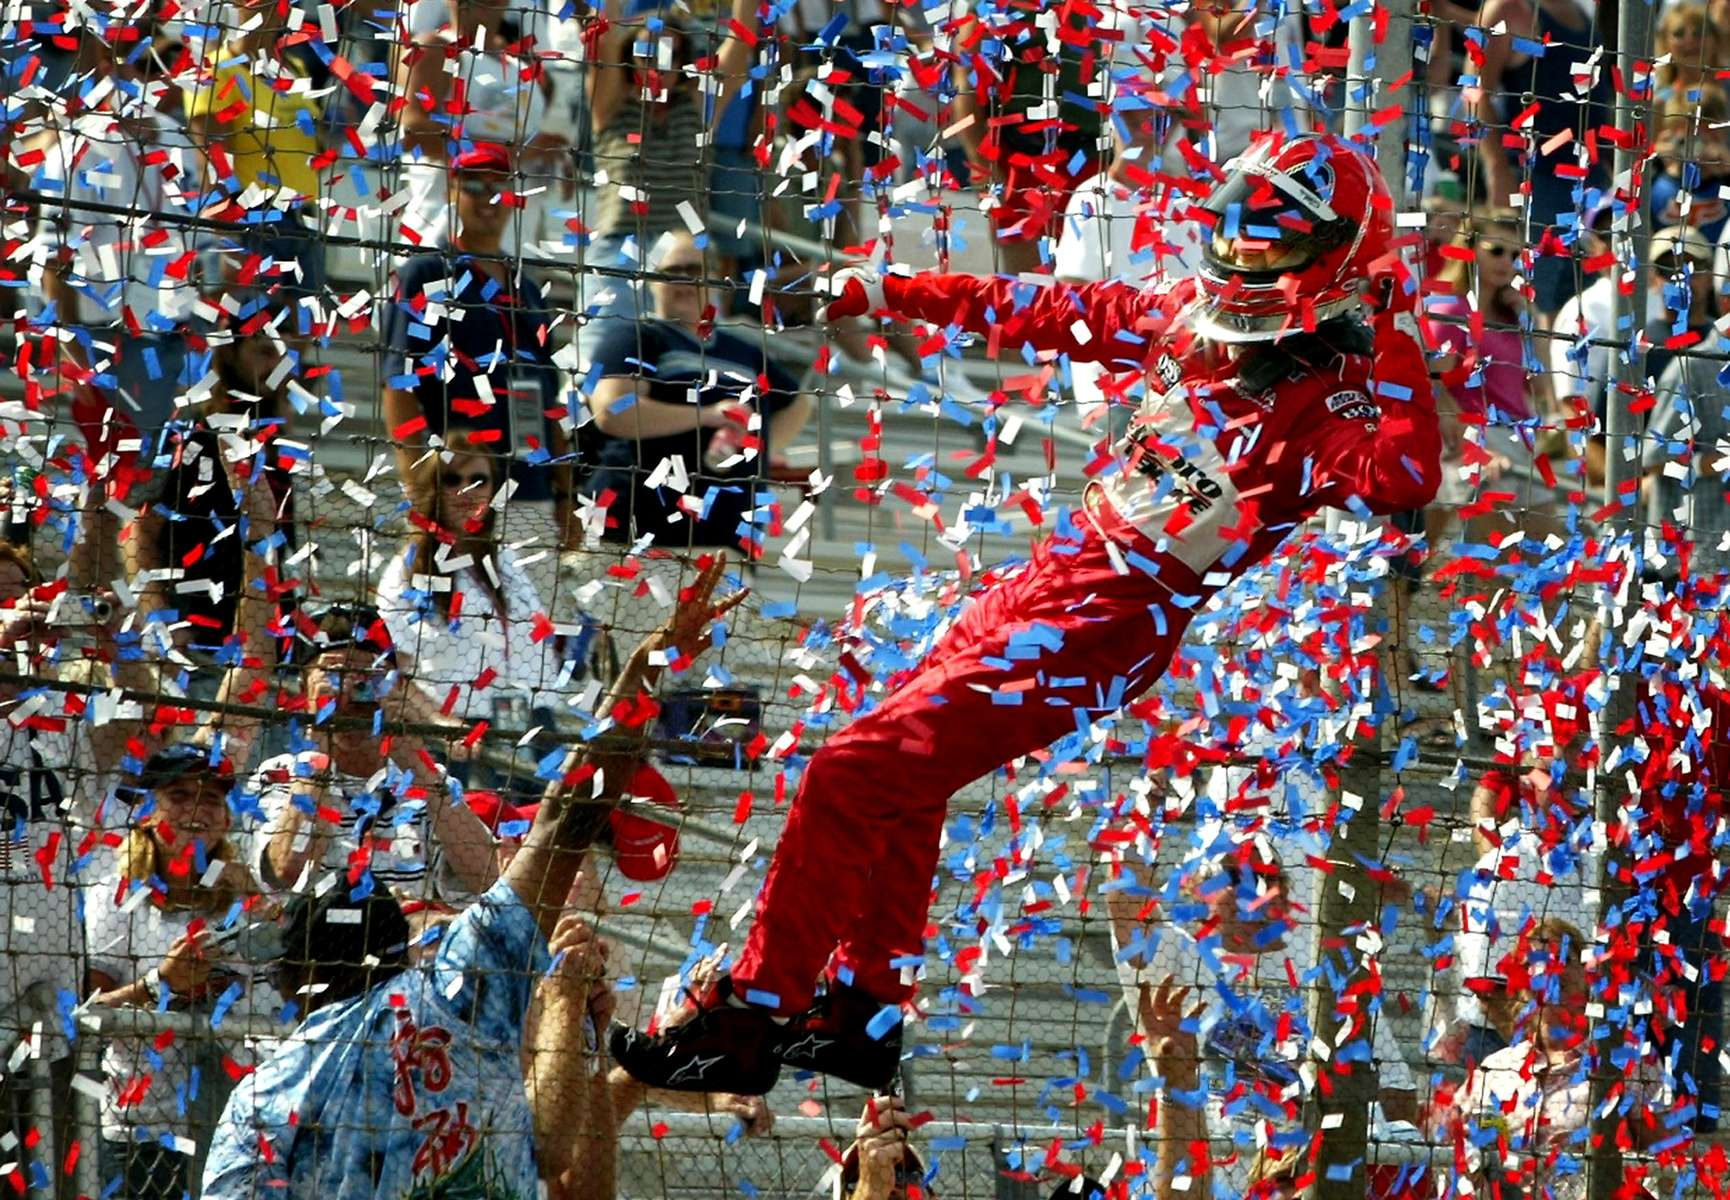 Helio Castroneves celebrates his victory by climbing the fence at the finish line after winning the Emerson Indy 250 at Gateway International Raceway.